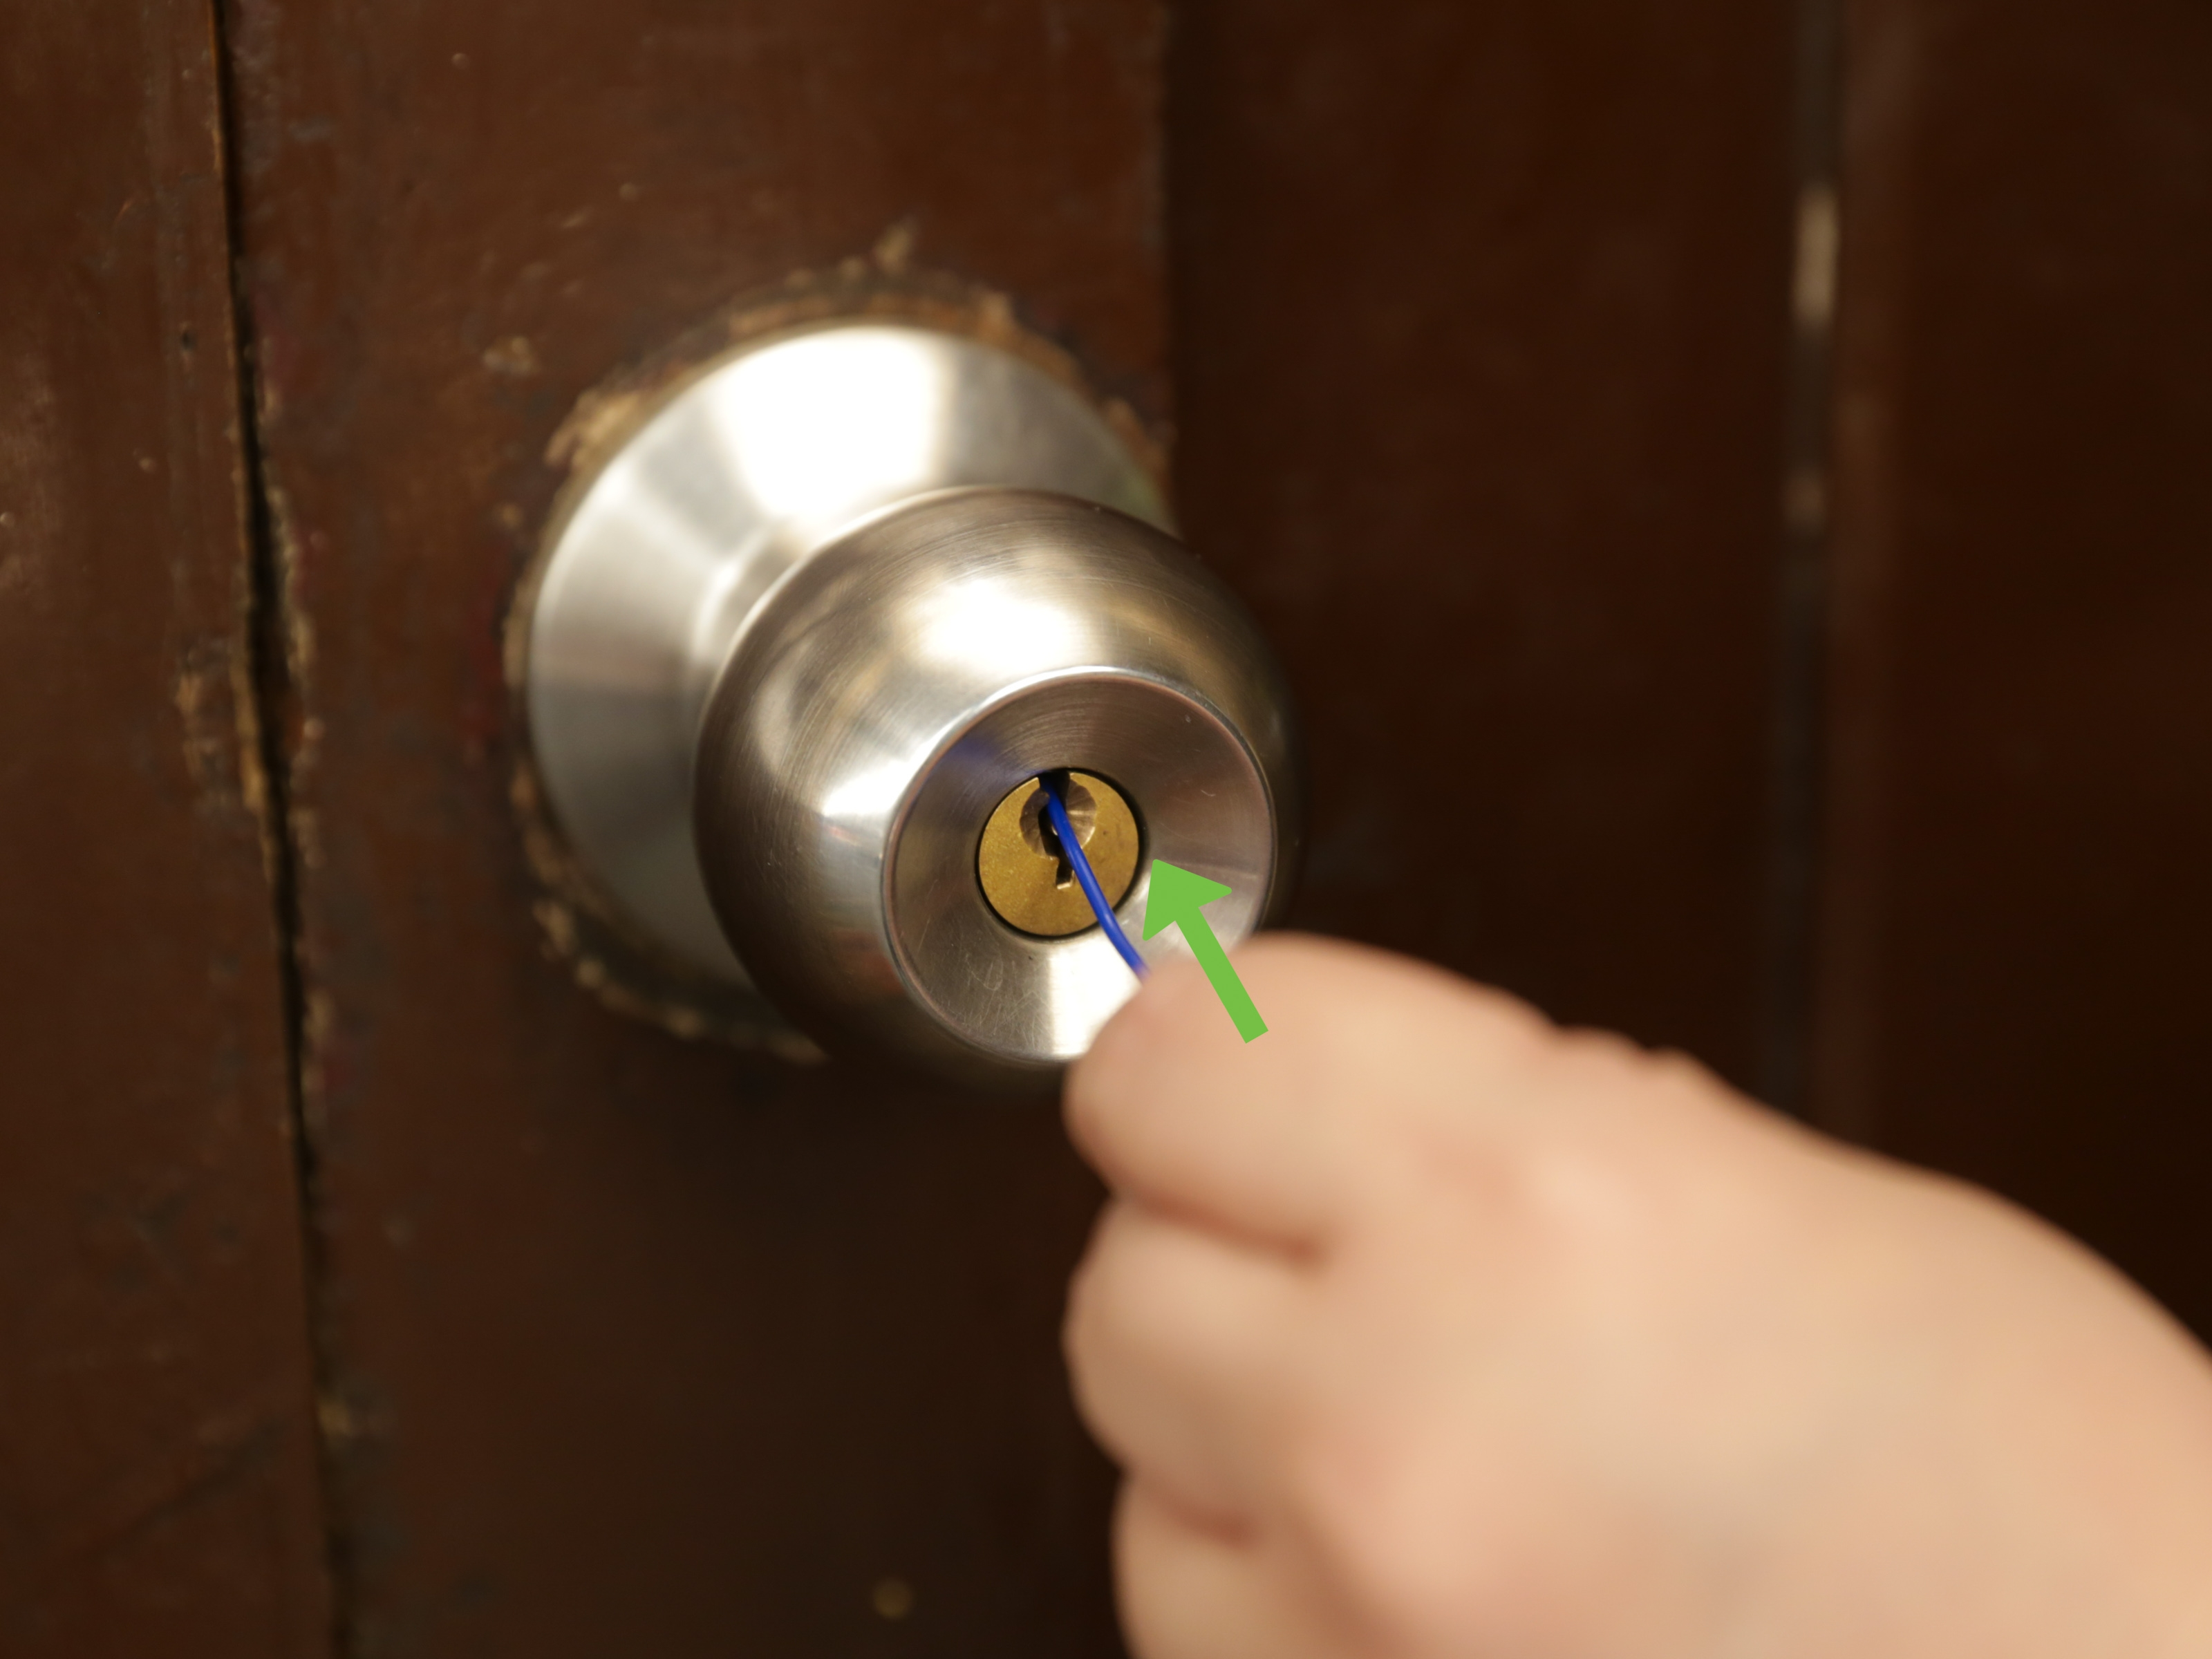 Unlocking Bathroom Door Without Key